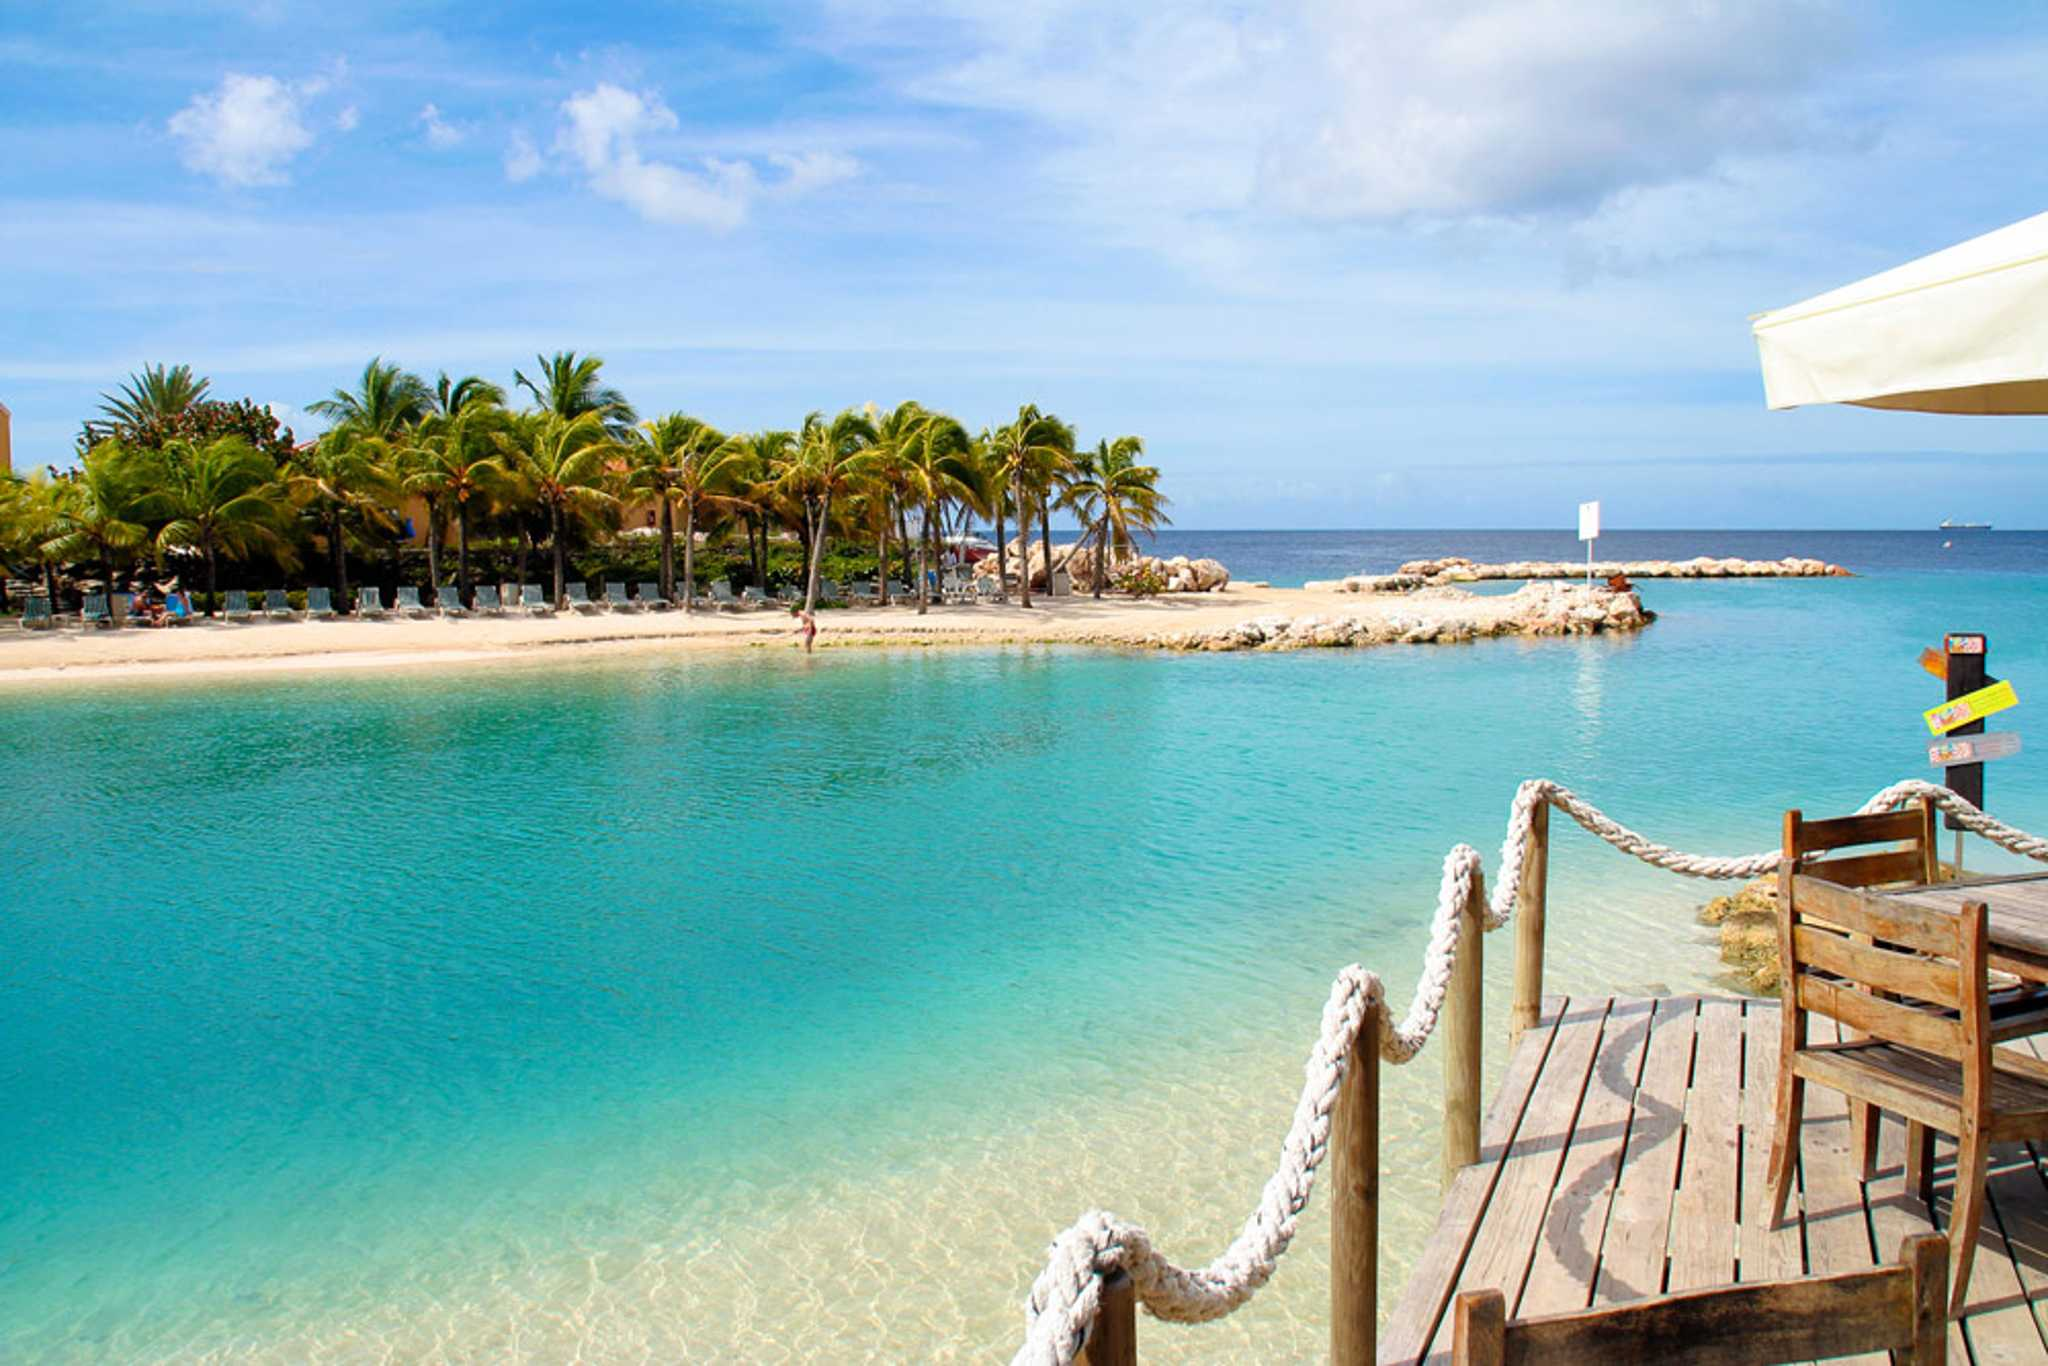 Curacao_Willemstad_beach-with-blue-waters